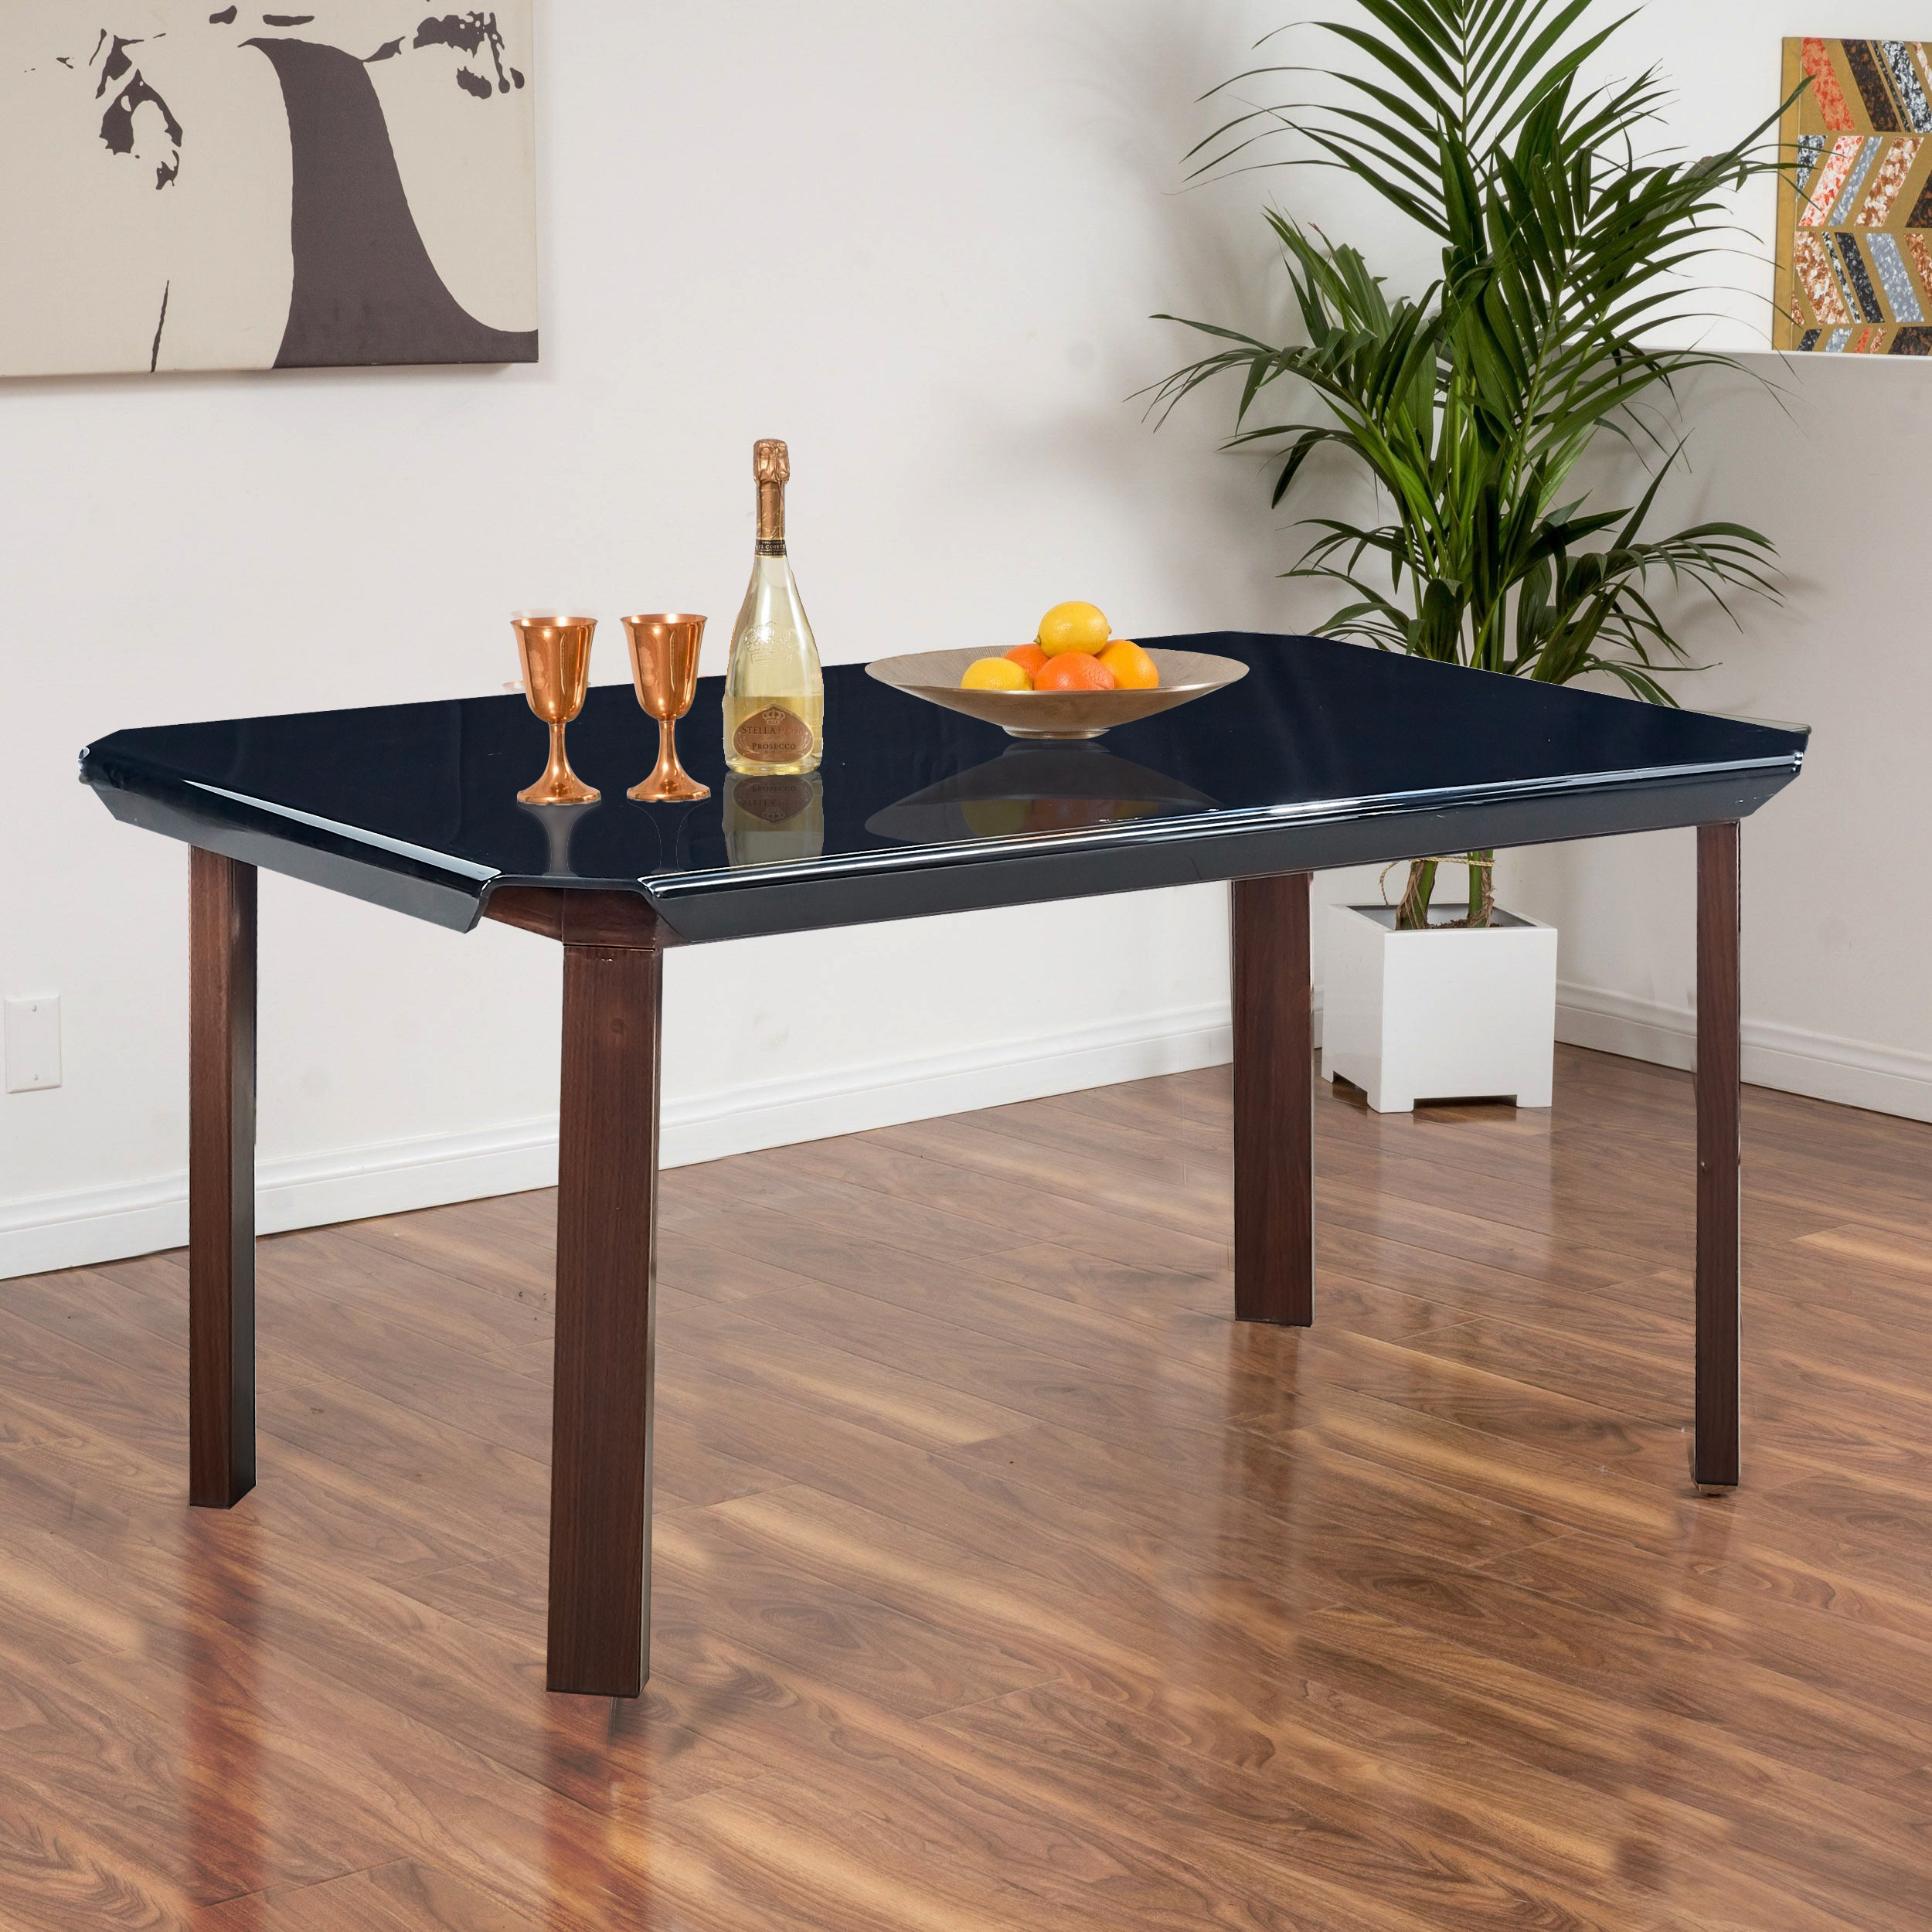 Classic Modular Kitchen Cabinets Rs 18000 Piece: Buy Bentley Mild Steel Six Seater Dining Table In Black